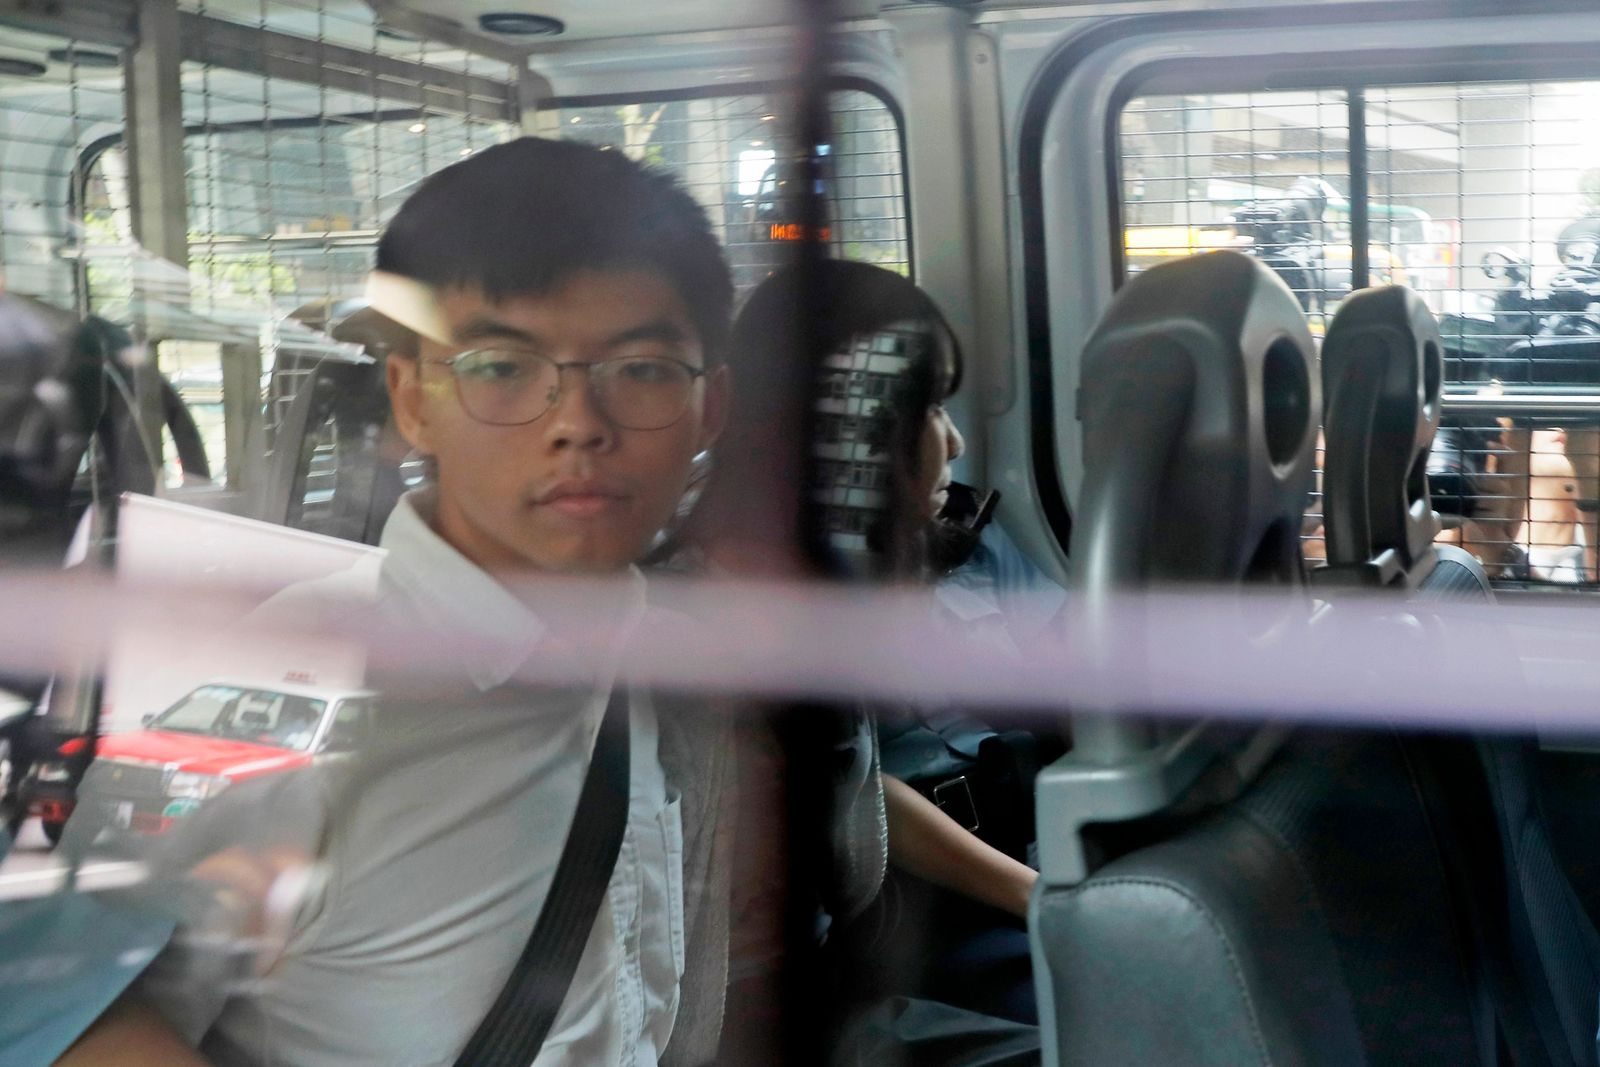 Pro-democracy activists Joshua Wong, left, and Agnes Chow, are escorted in a police van at a district court in Hong Kong, Friday, Aug. 30, 2019. ears to a harder line on this summer's protests. (AP Photo/Kin Cheung)